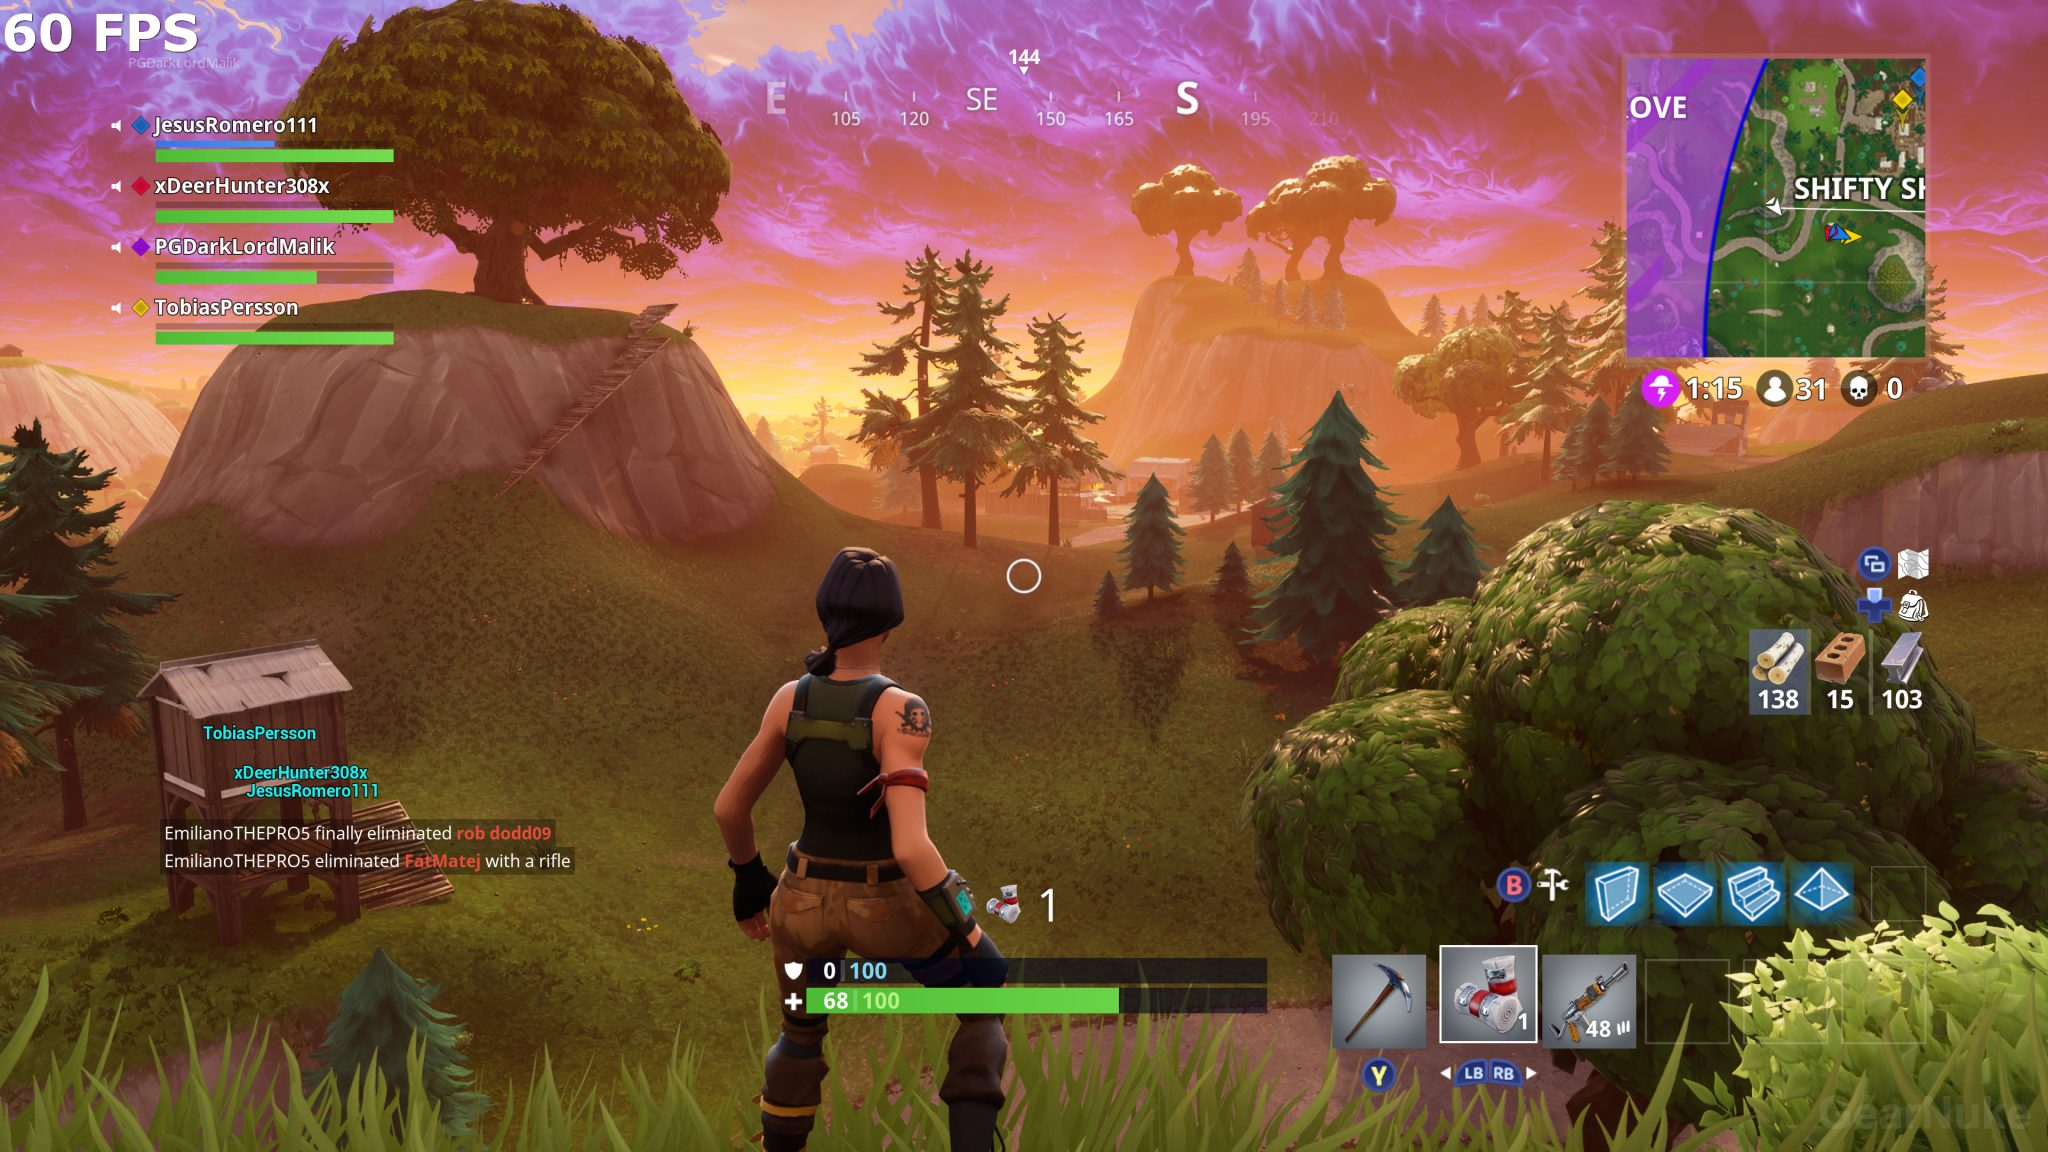 Fortnite Is Stunning At 4K/60 FPS On Xbox One X, Visual Comparison ...